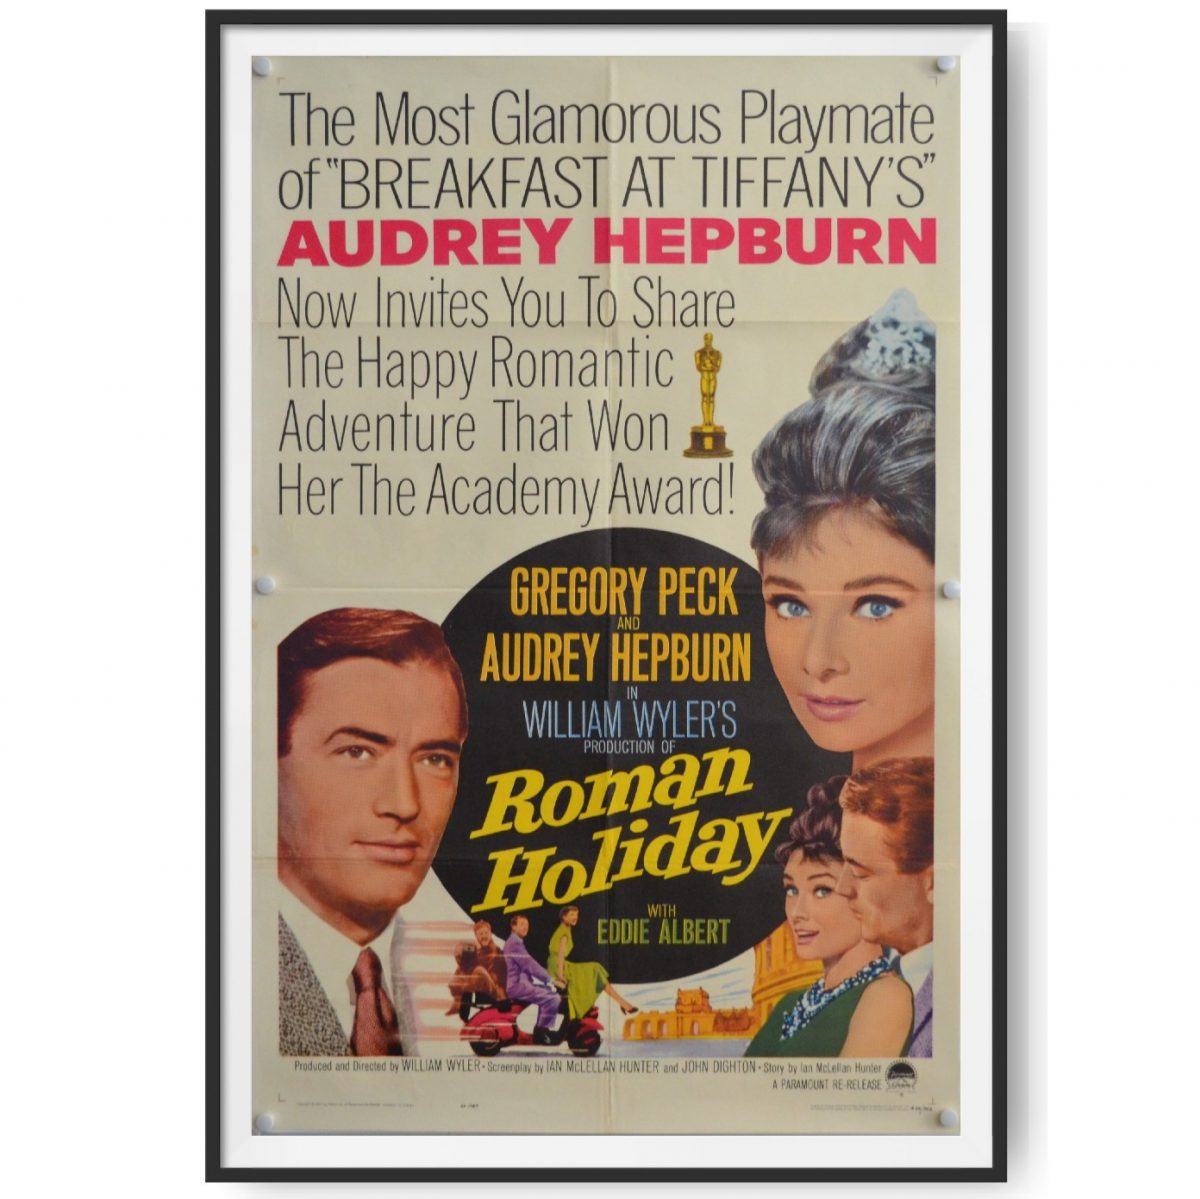 This is a framed US cinema poster for the film Roman Holiday. Audrey Hepburn and Gregory Peck features in the posters image.